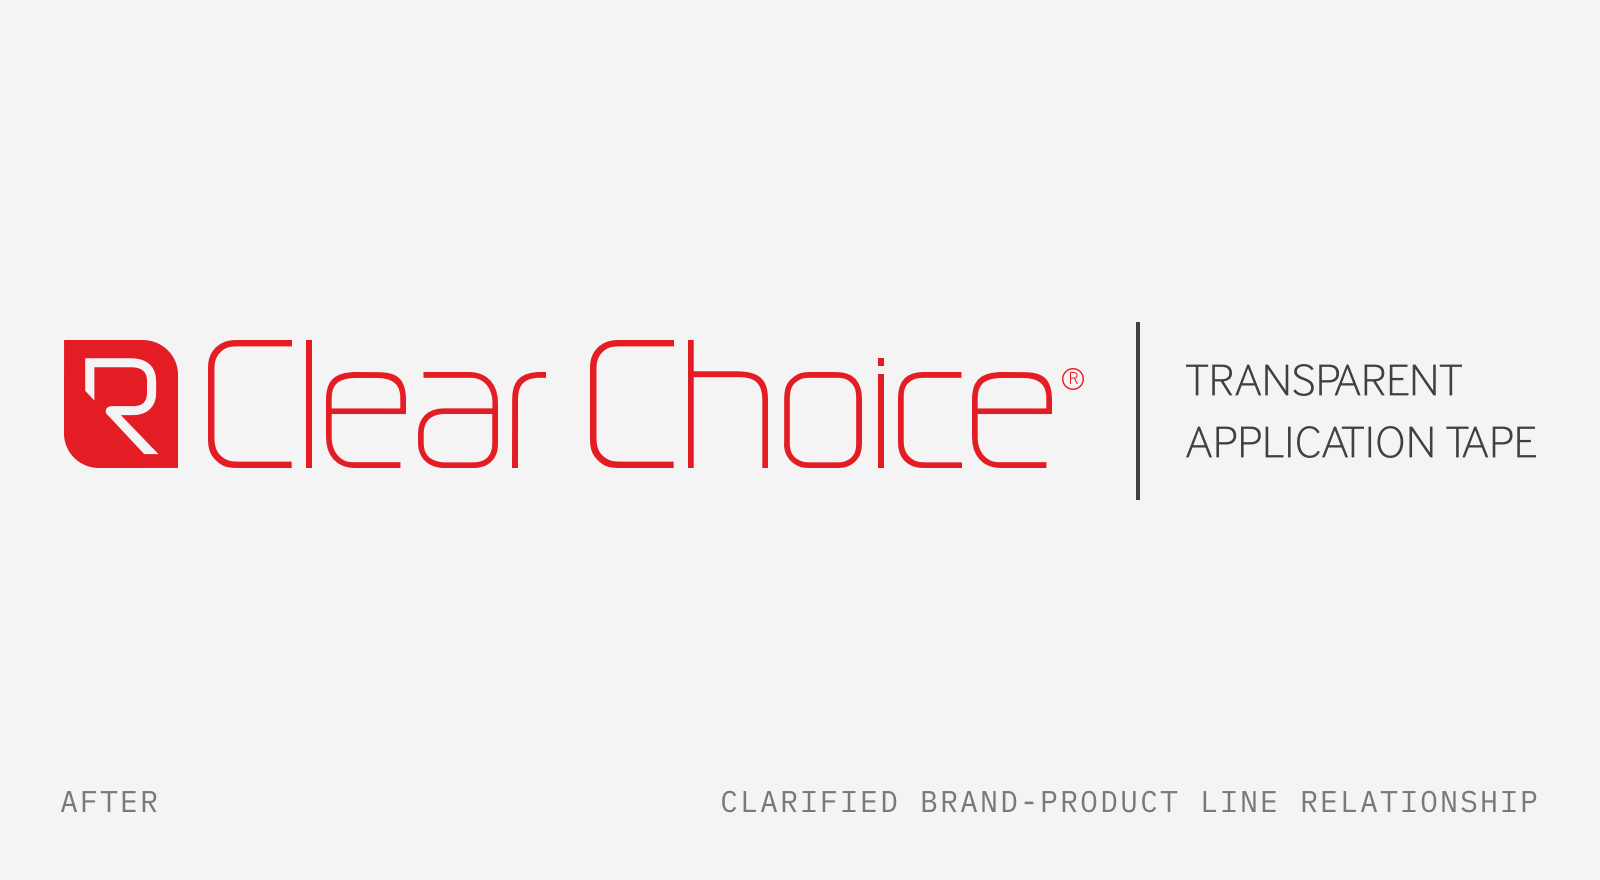 clearchoice after.png